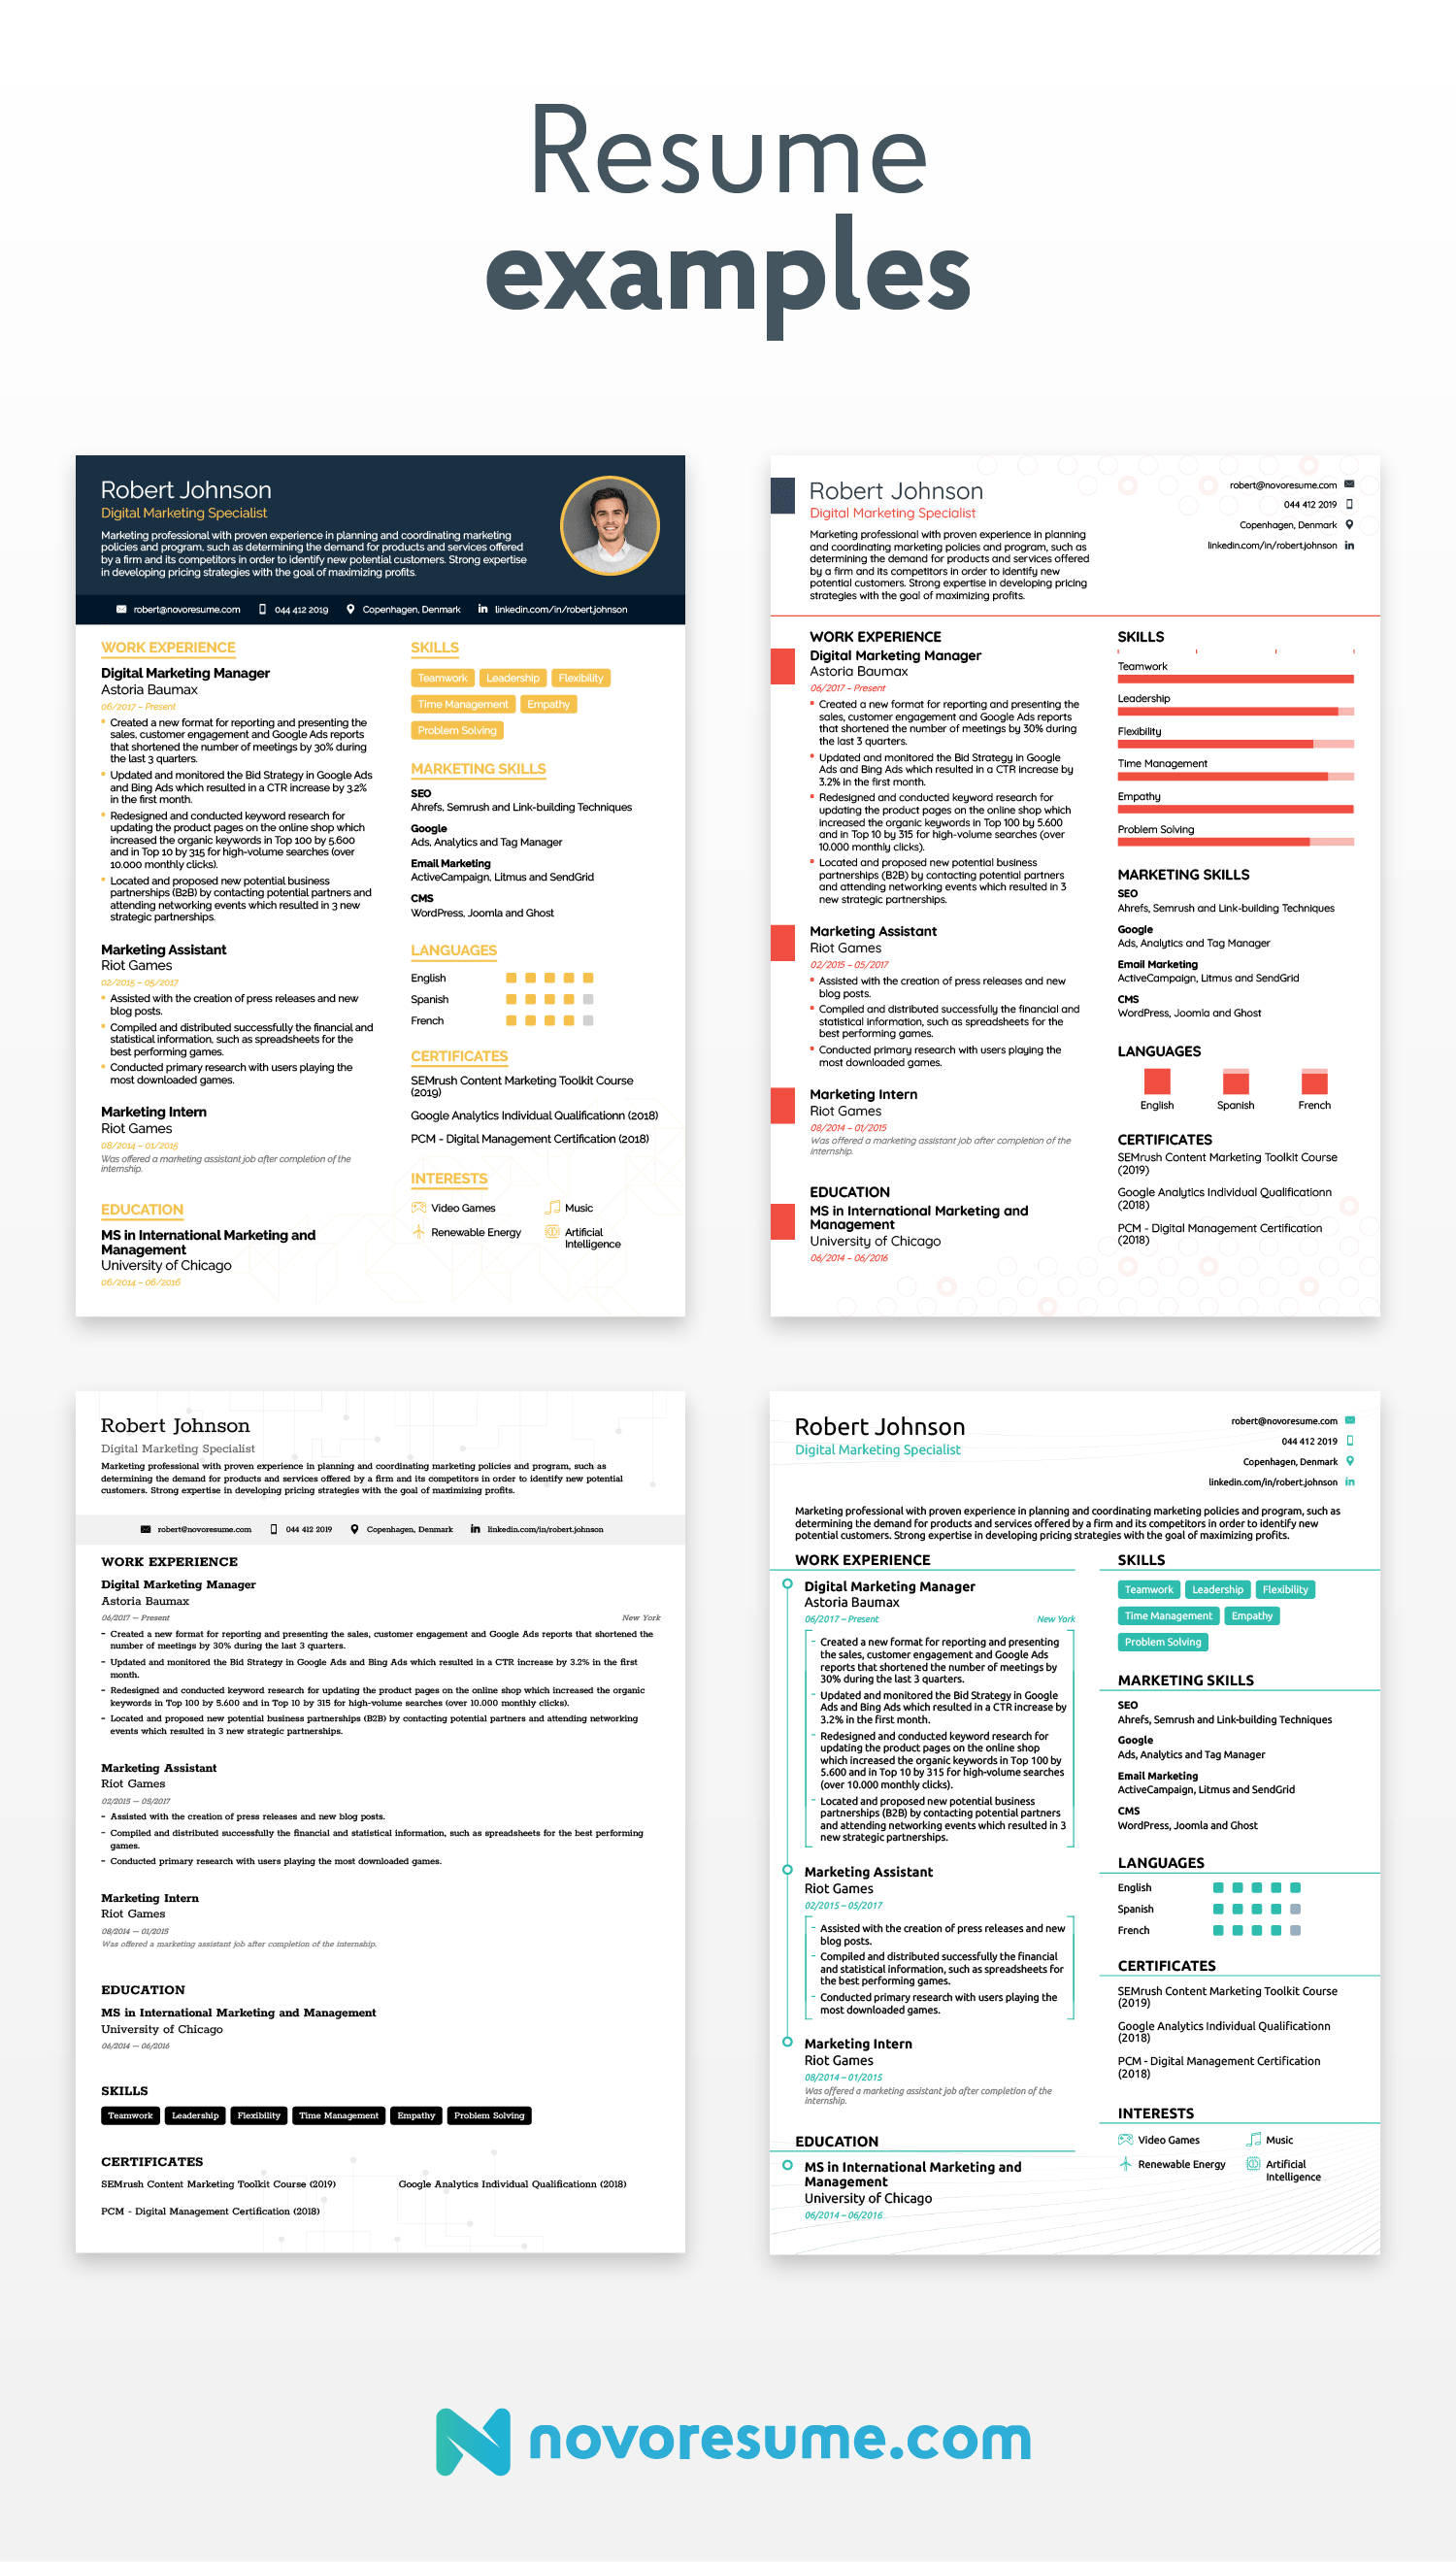 resume examples for job hunt